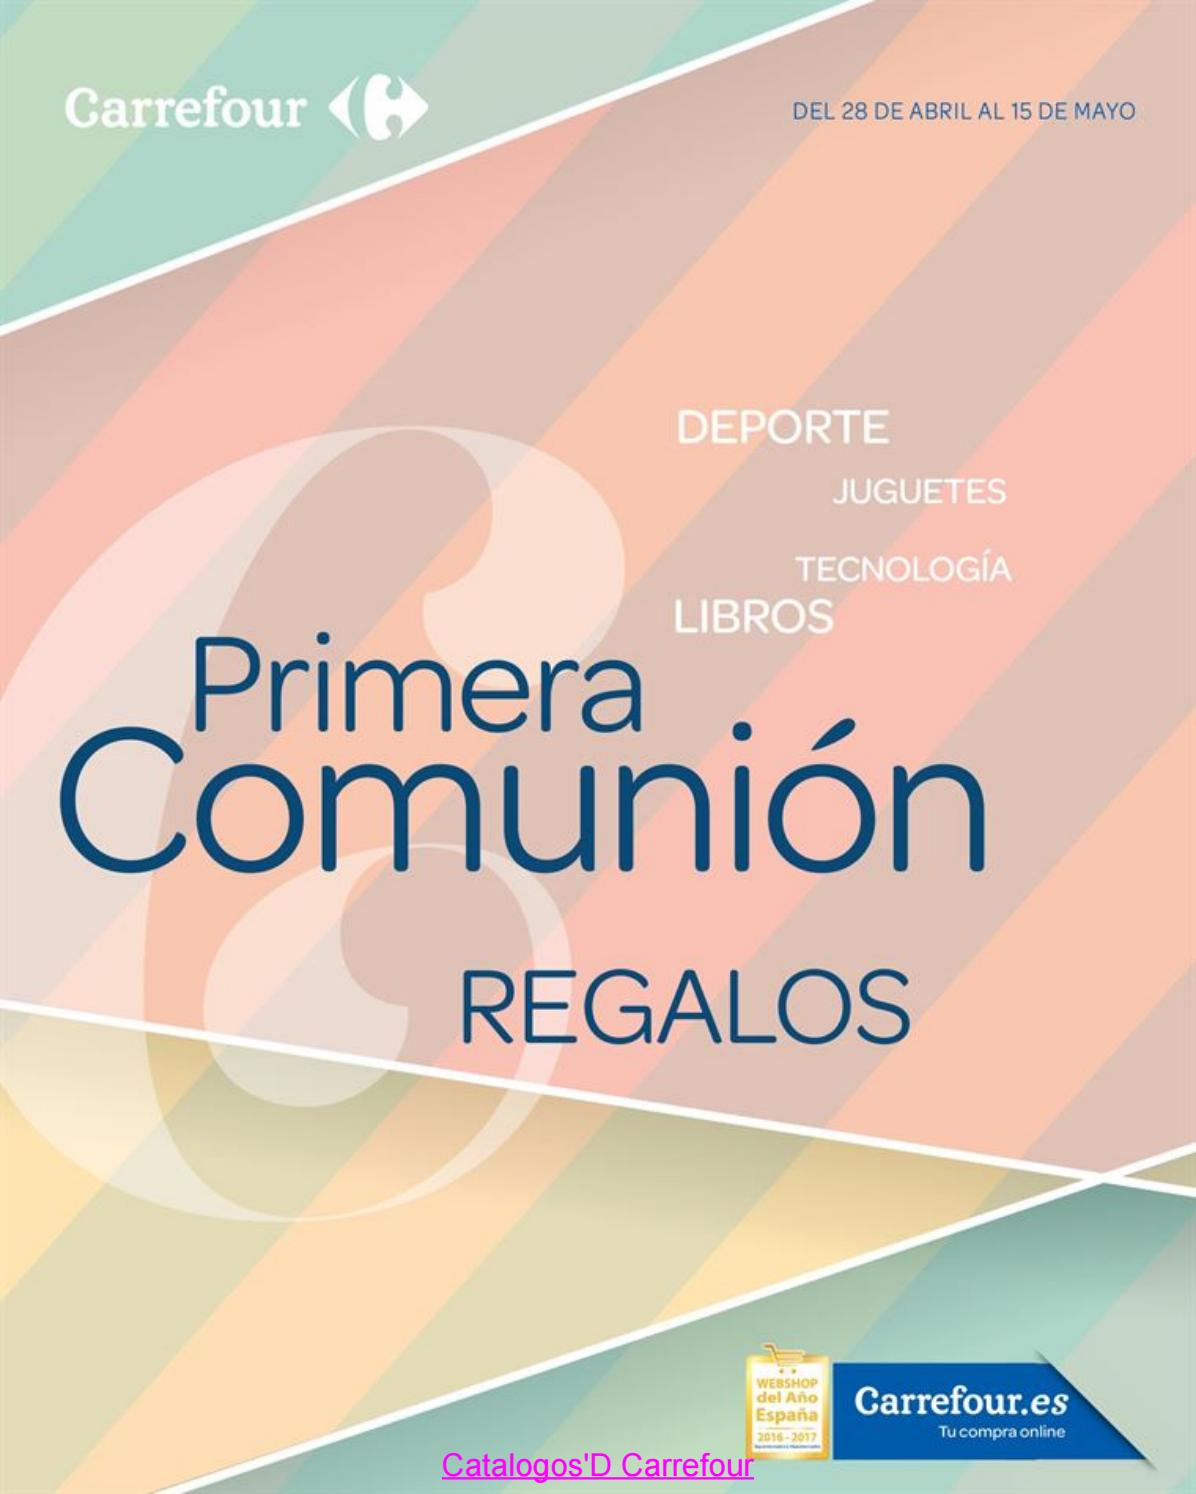 Libros Carrefour Catalogosd Carrefour Comunion 17 By Revistas En Linea Issuu